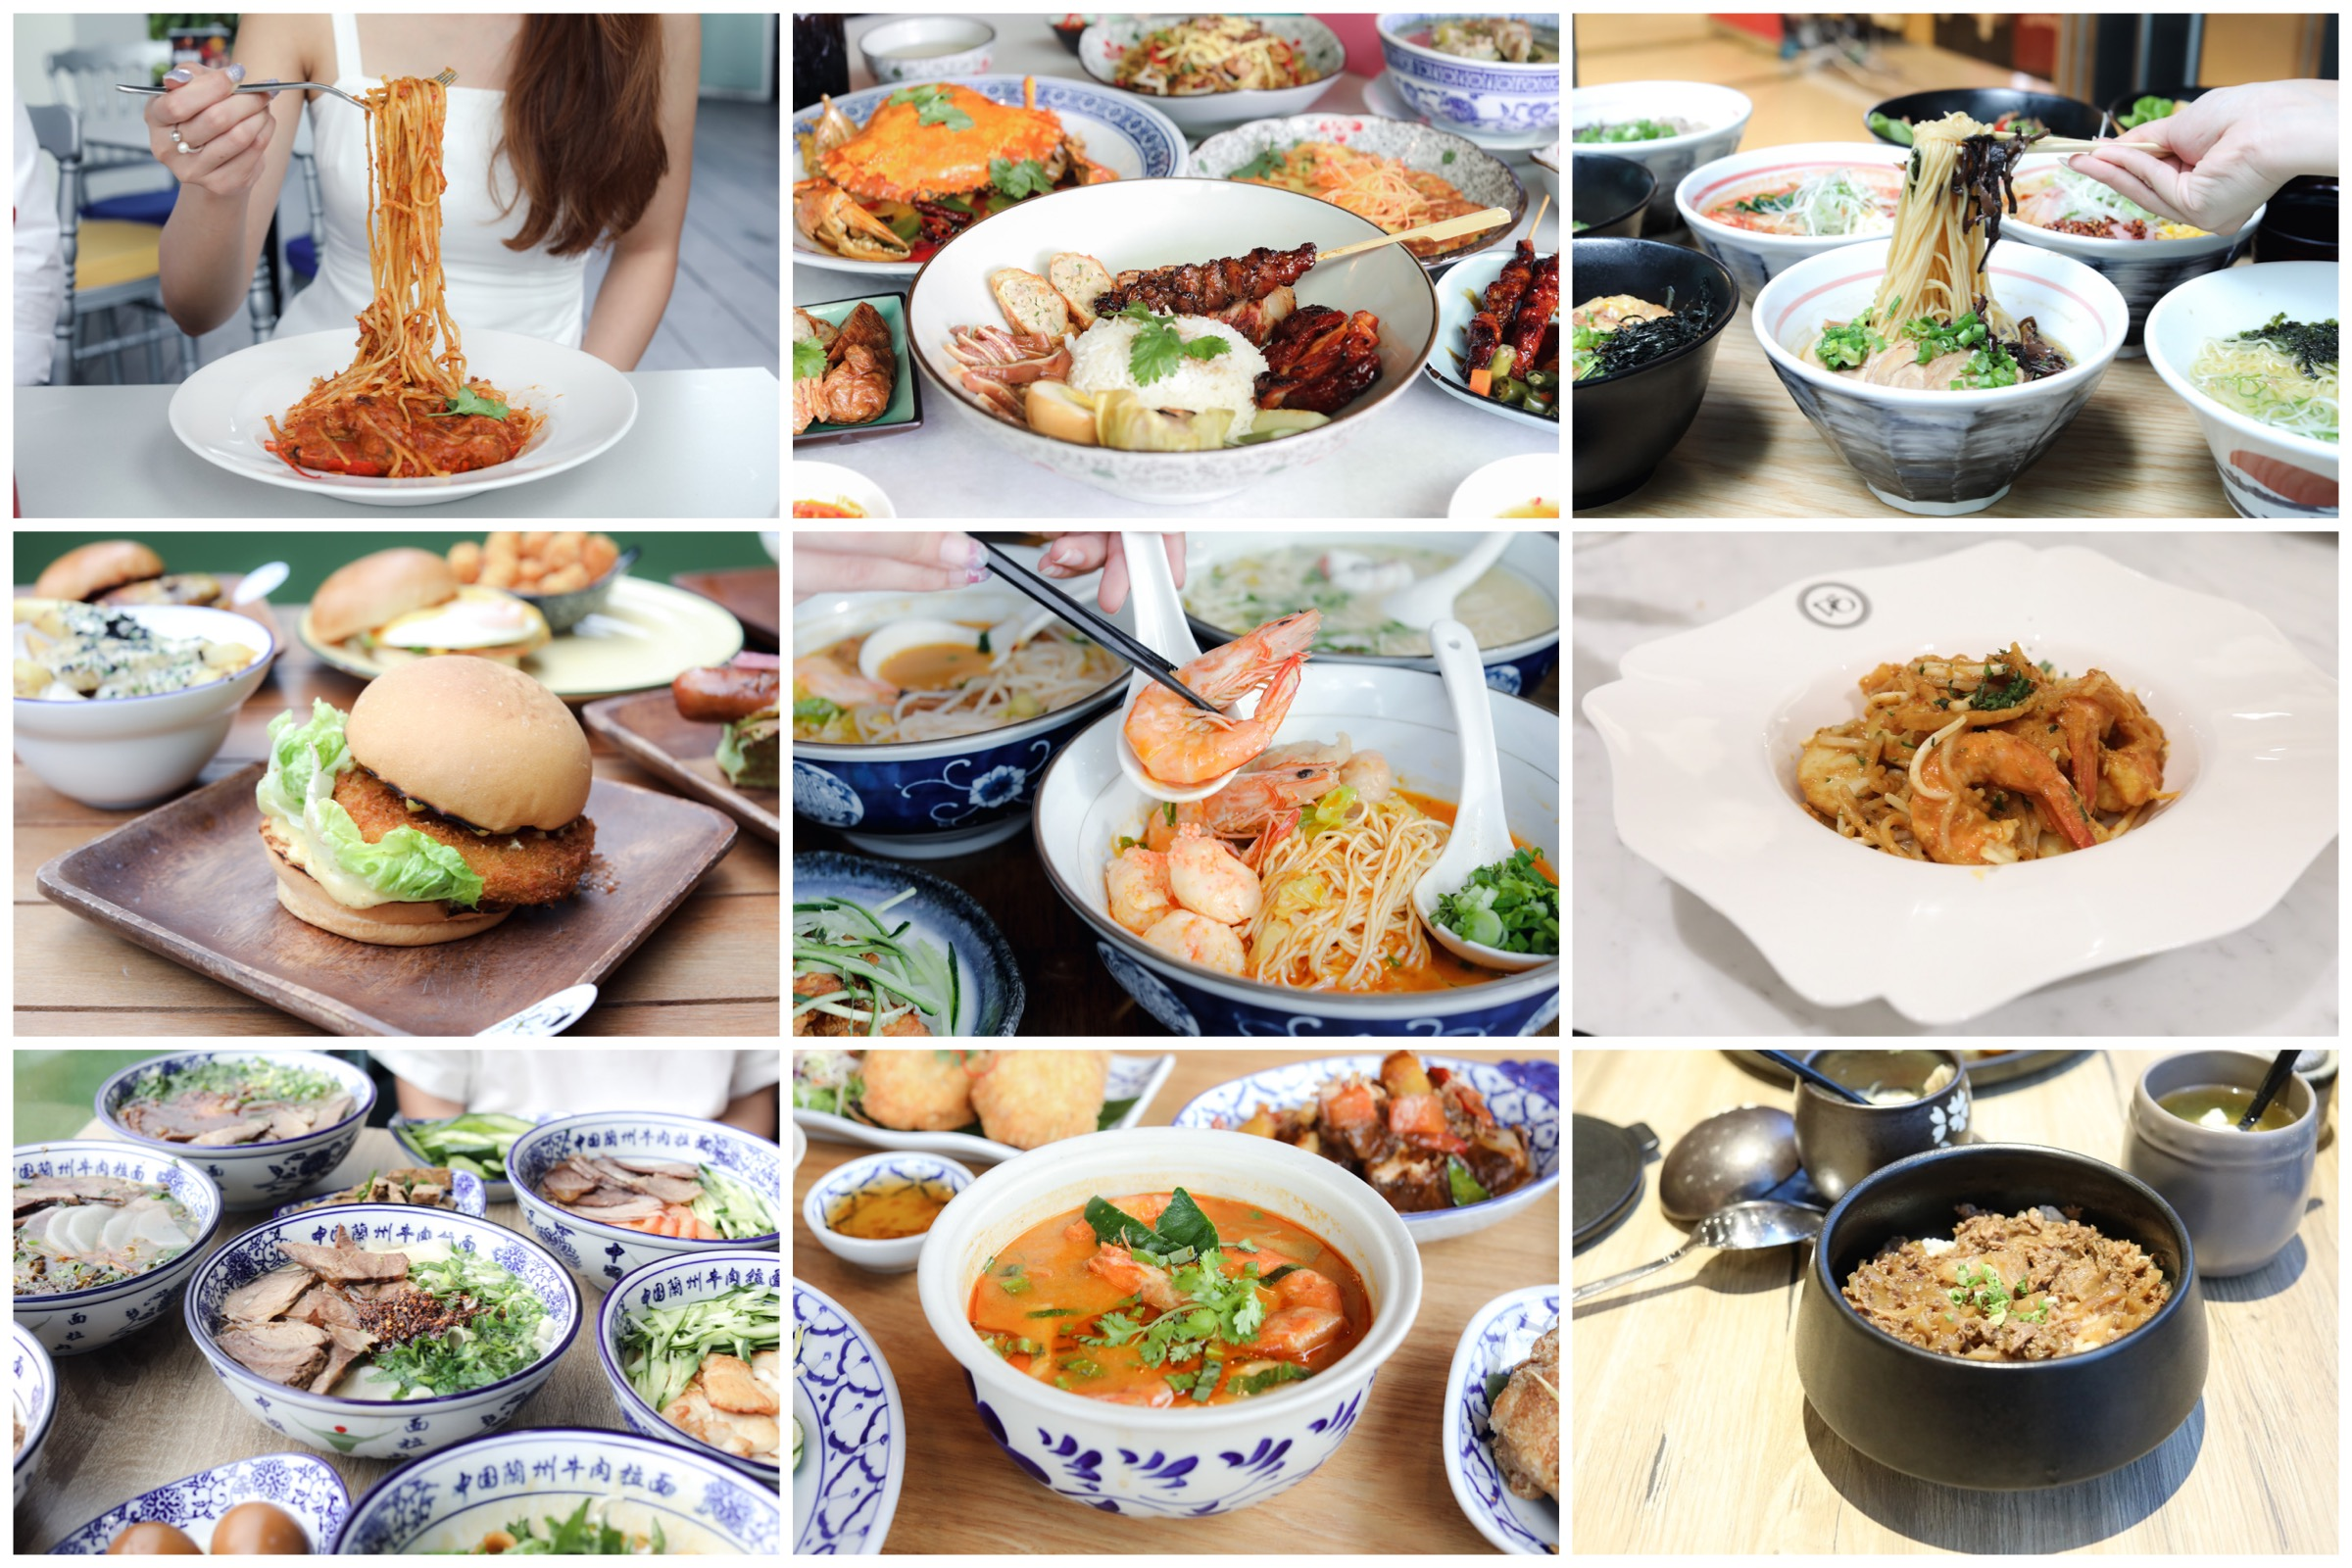 9 NEW Restaurants Singapore December 2018 - Hilltop Dining Place, Wagyu Steakhouse By Astons, Violet Oon At ION Orchard